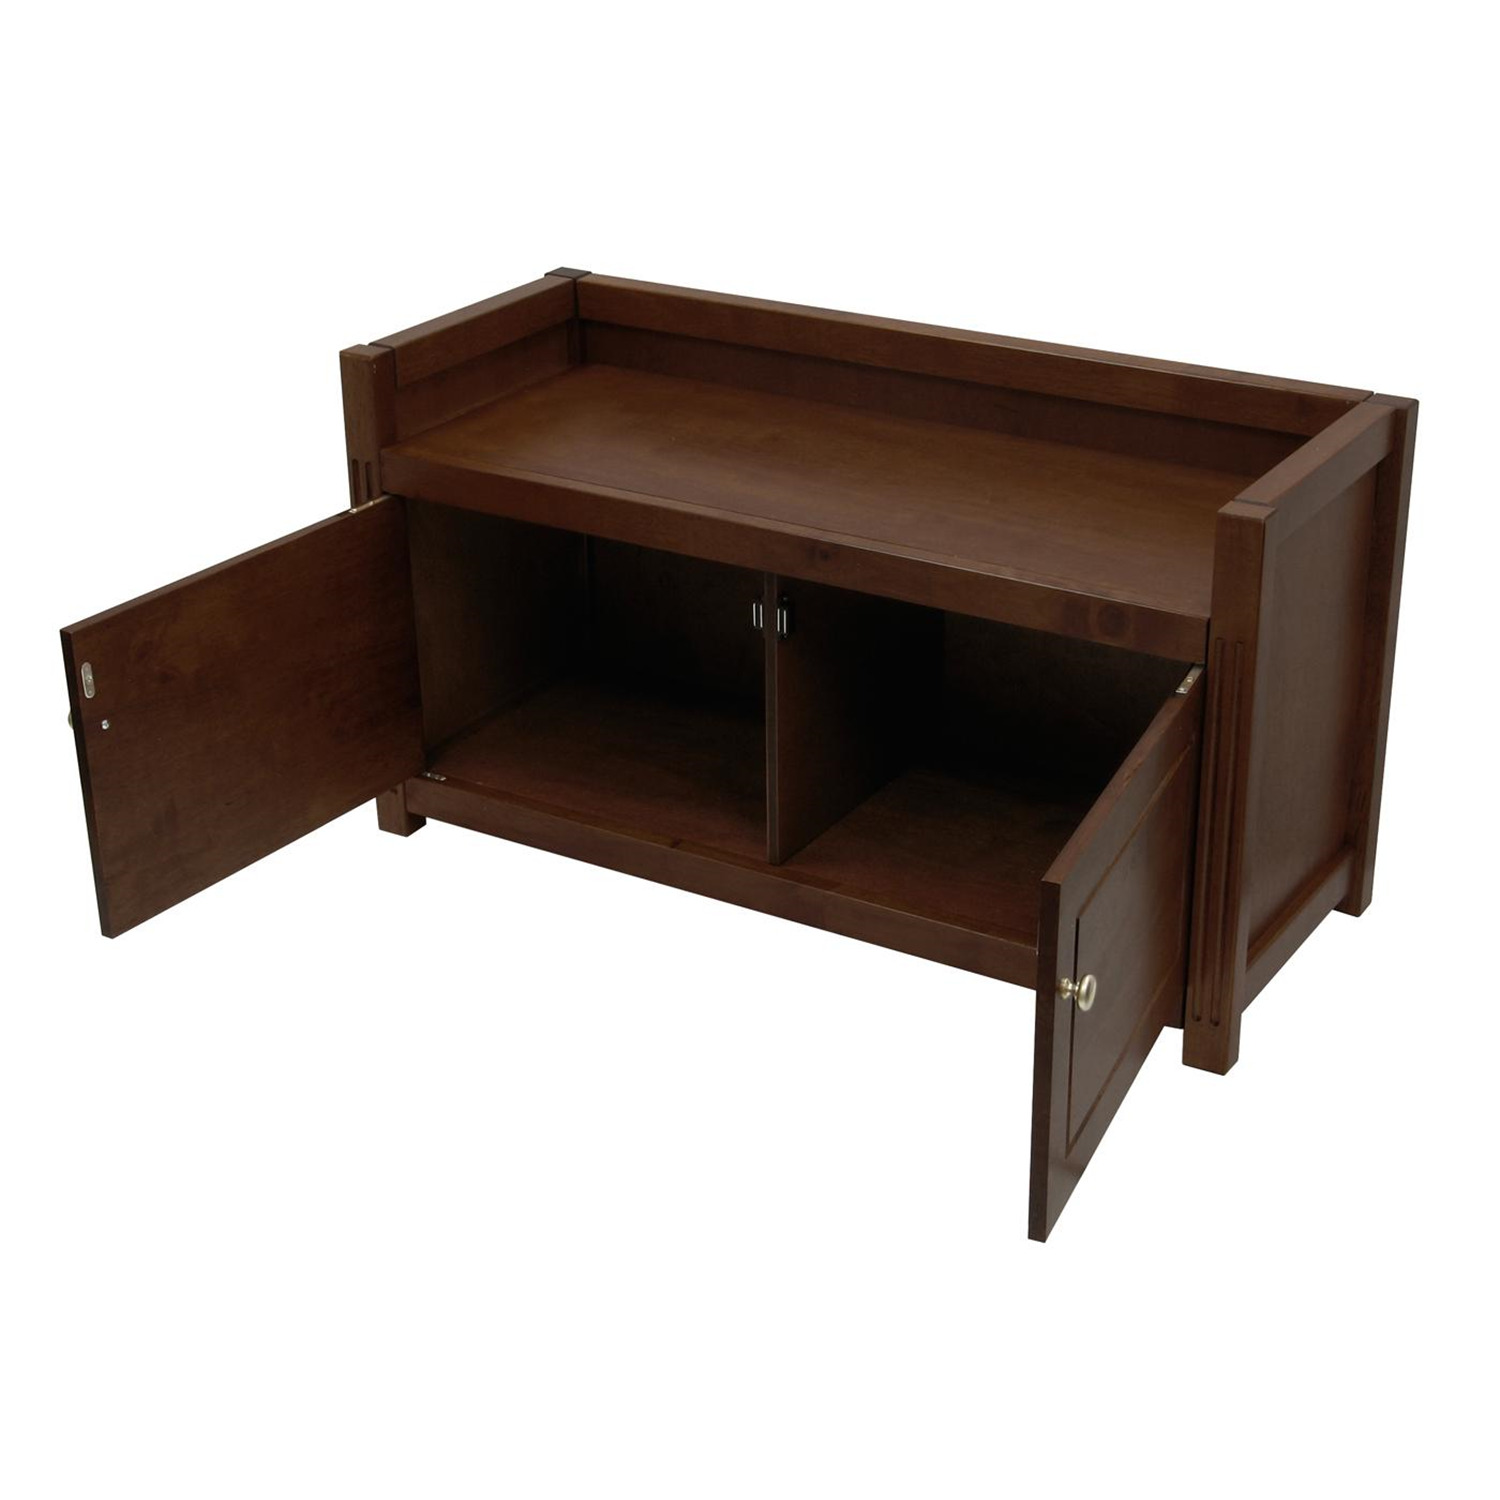 Winsome Regalia Bench With Storage By Oj Commerce 94040a